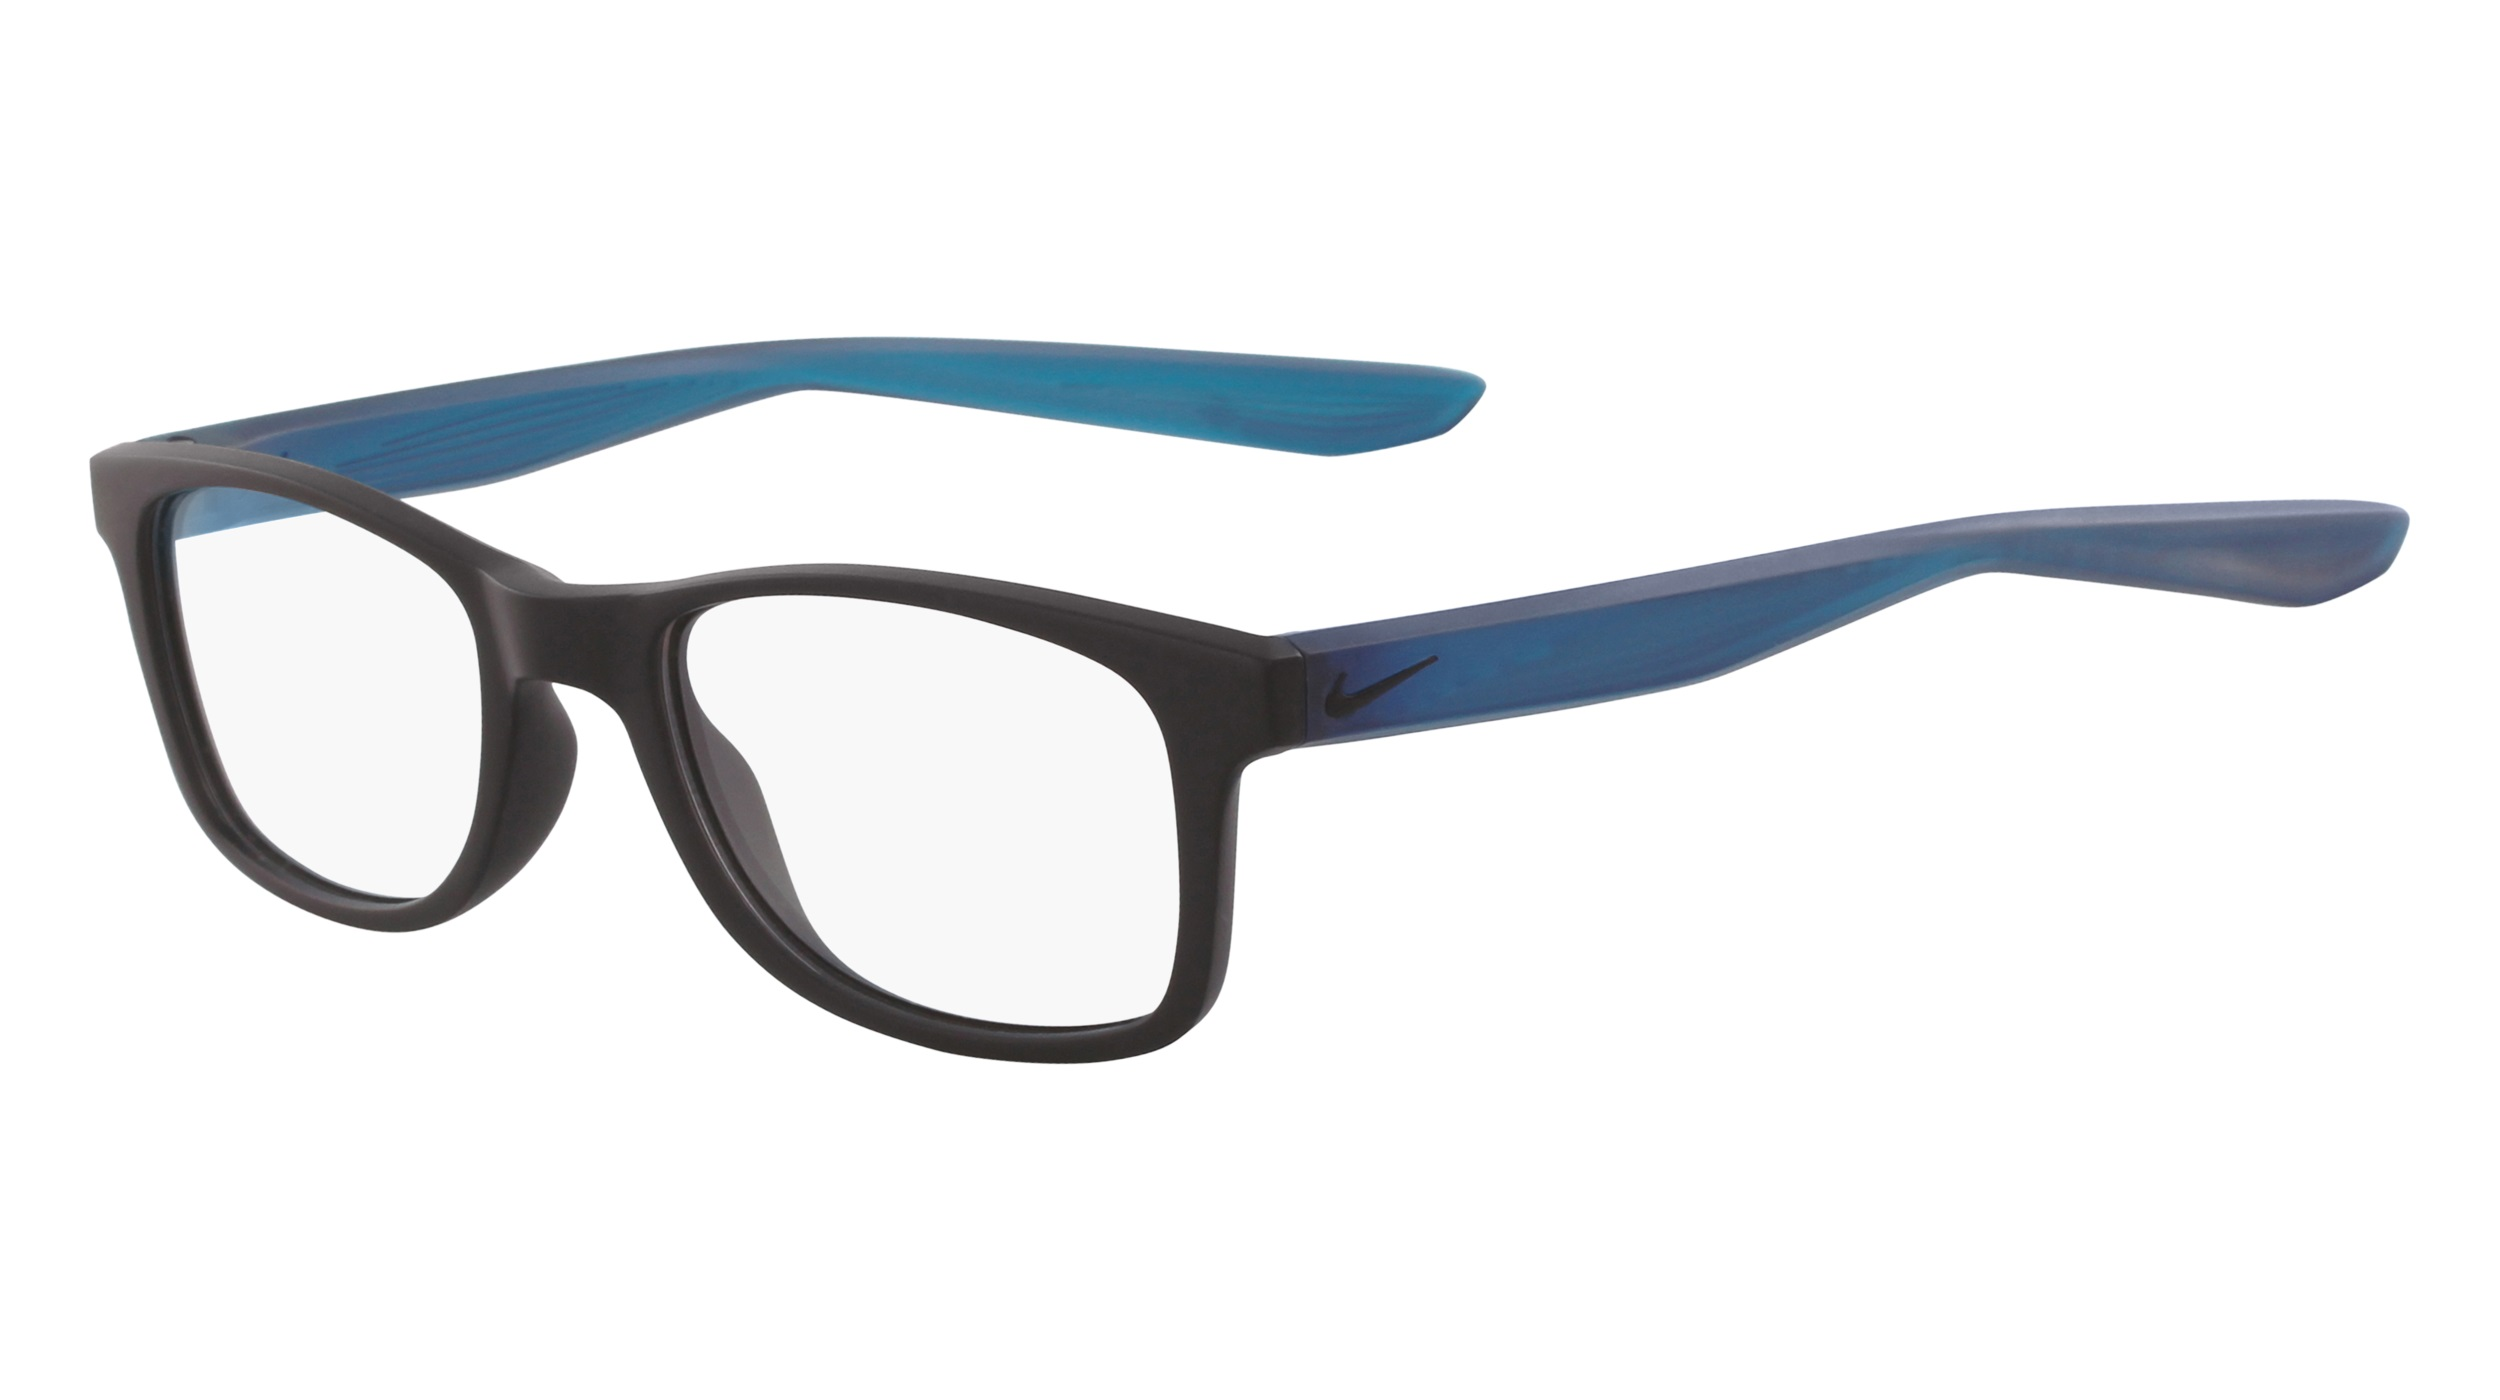 892330815ae3 Nike 5004-004 Kids Eyeglasses Matte Black Blue Nike5004-004 - Optiwow